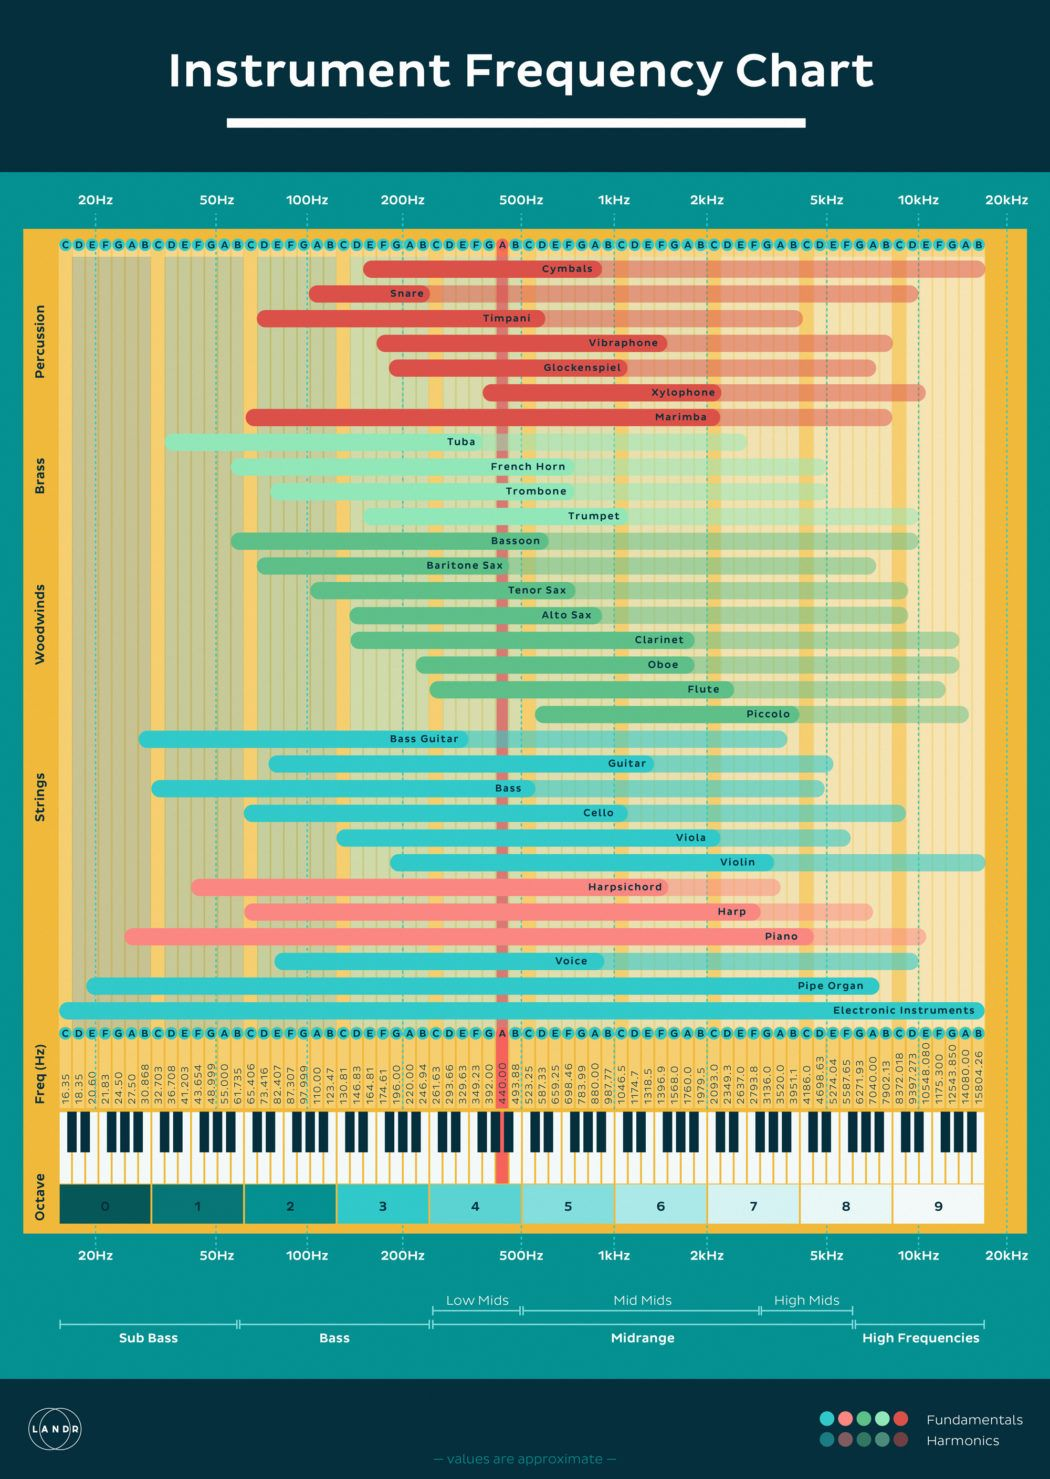 EQ Cheat Sheet How to Use Instrument Frequency Chart